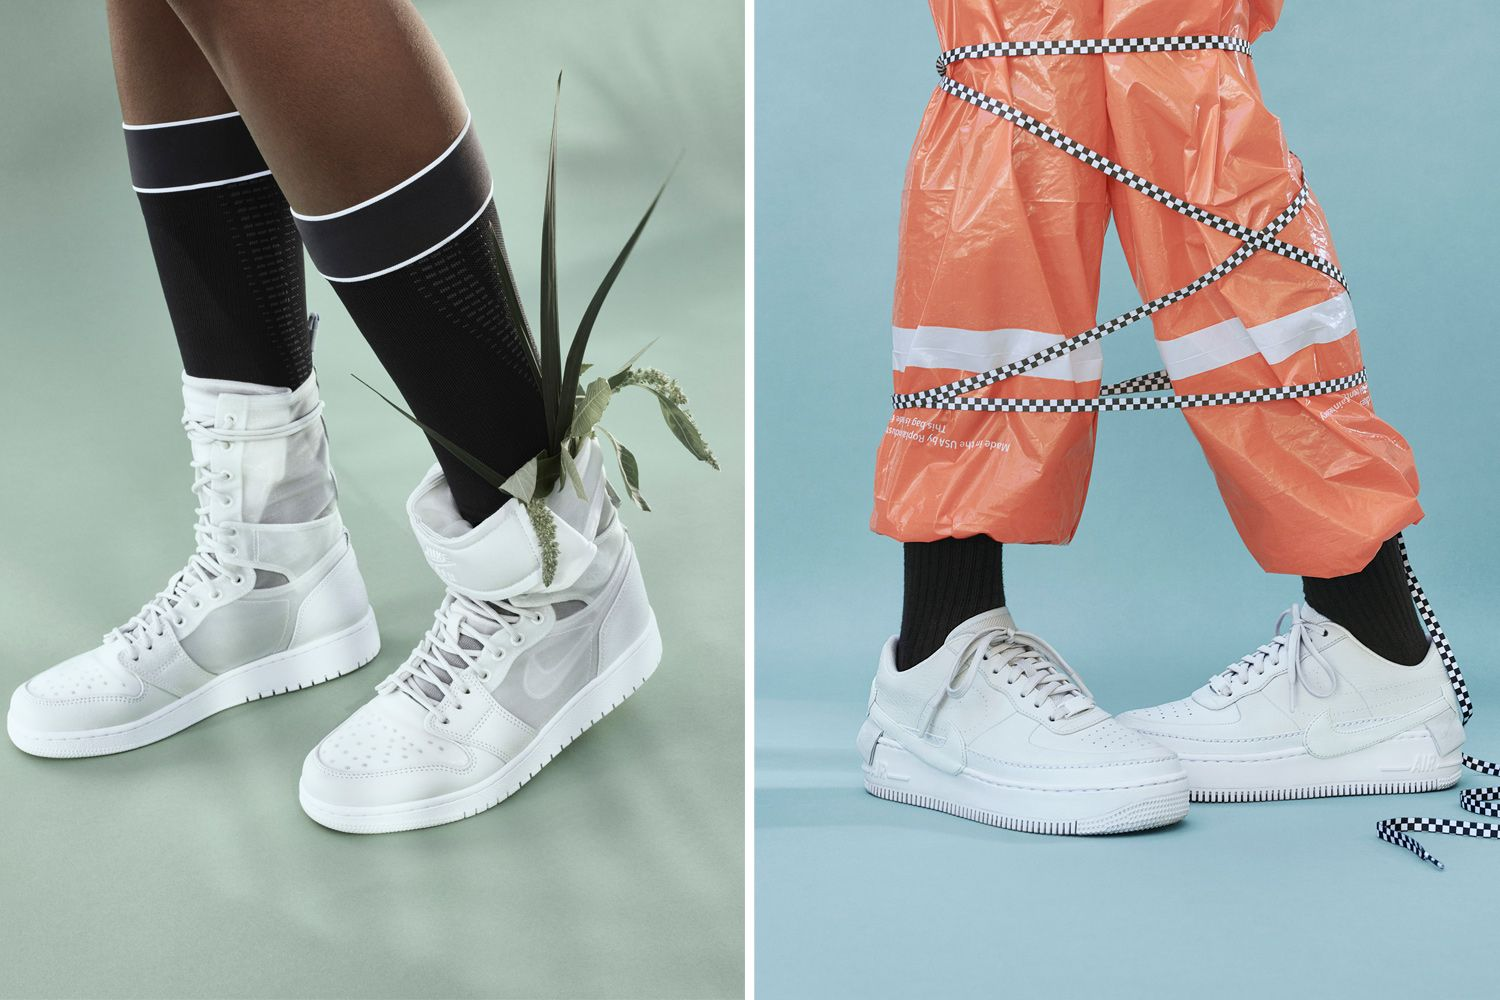 new concept a0645 0e918 Sneakers For Women Are Finally Improving   Highsnobiety